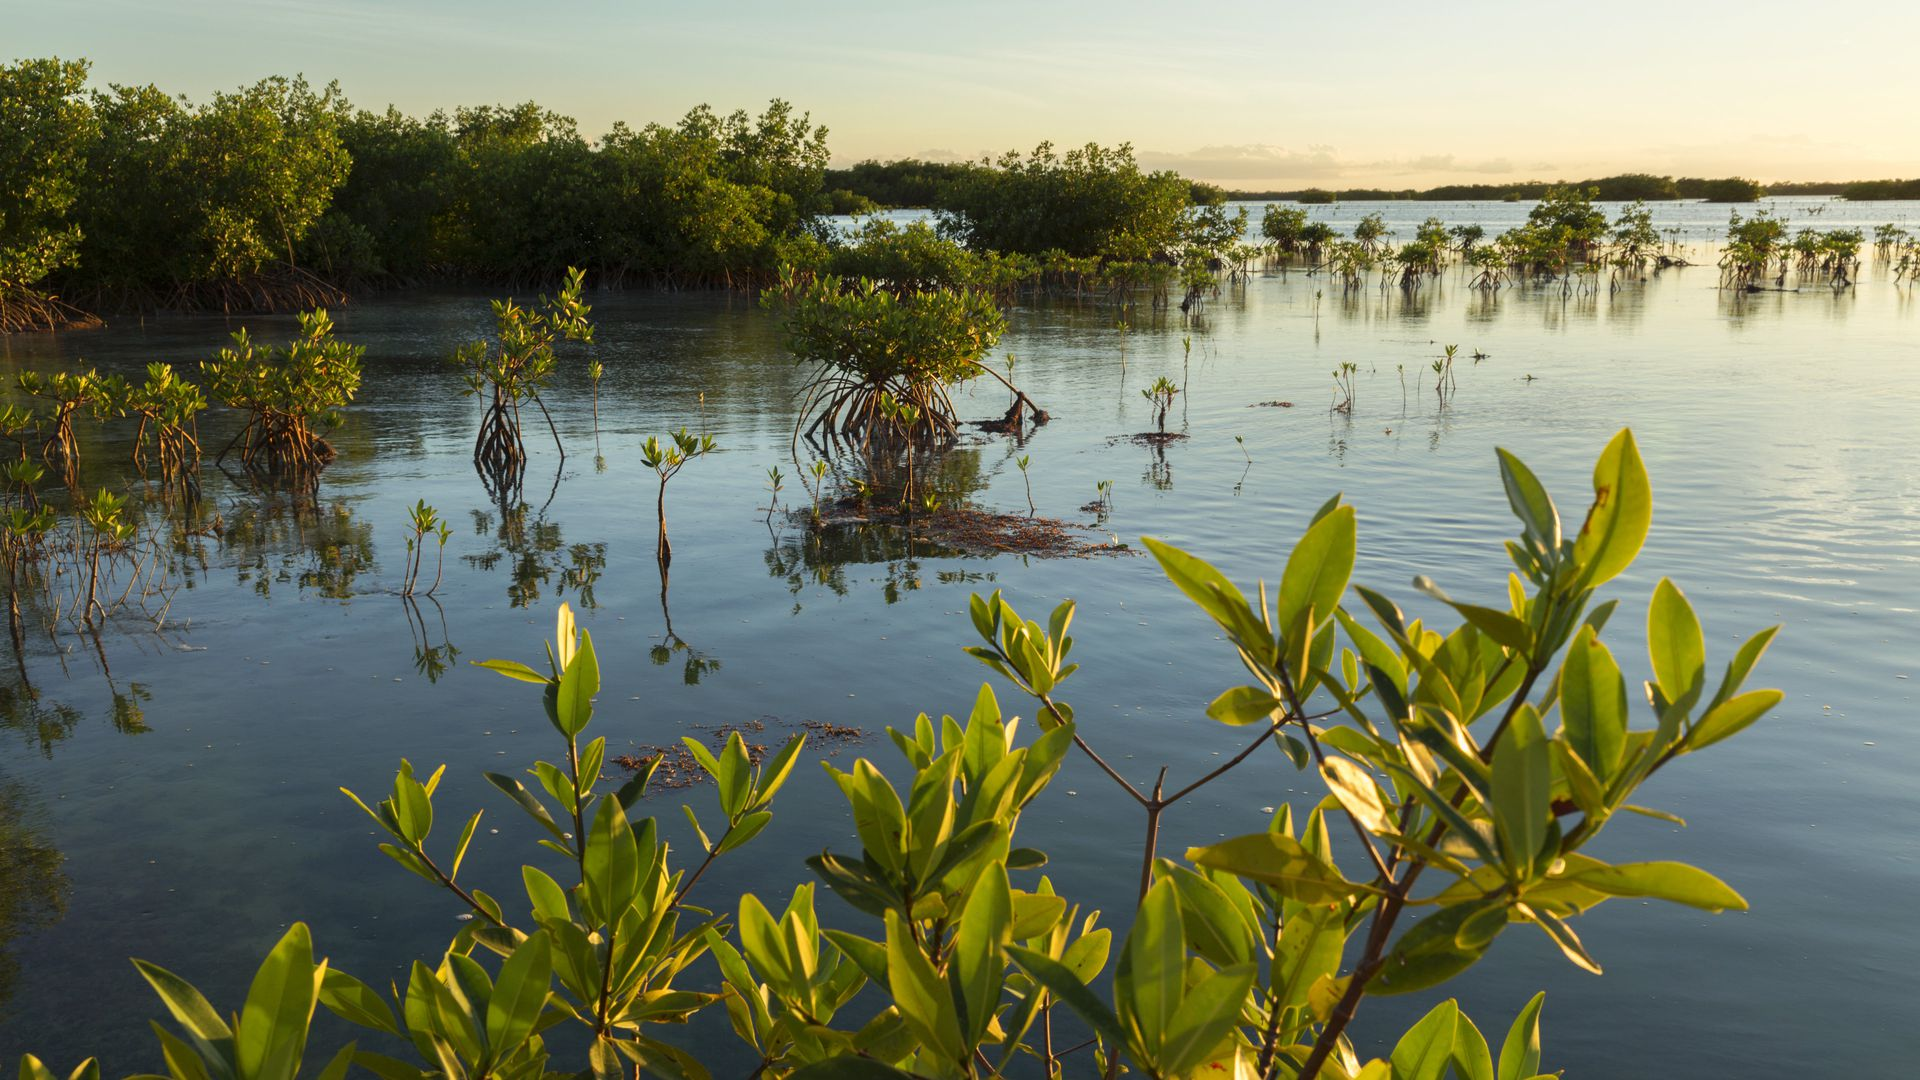 Mangroves on Cayo Coco, province Ciego de Avila, Cuba. Photo by: Prisma by Dukas/UIG via Getty Images